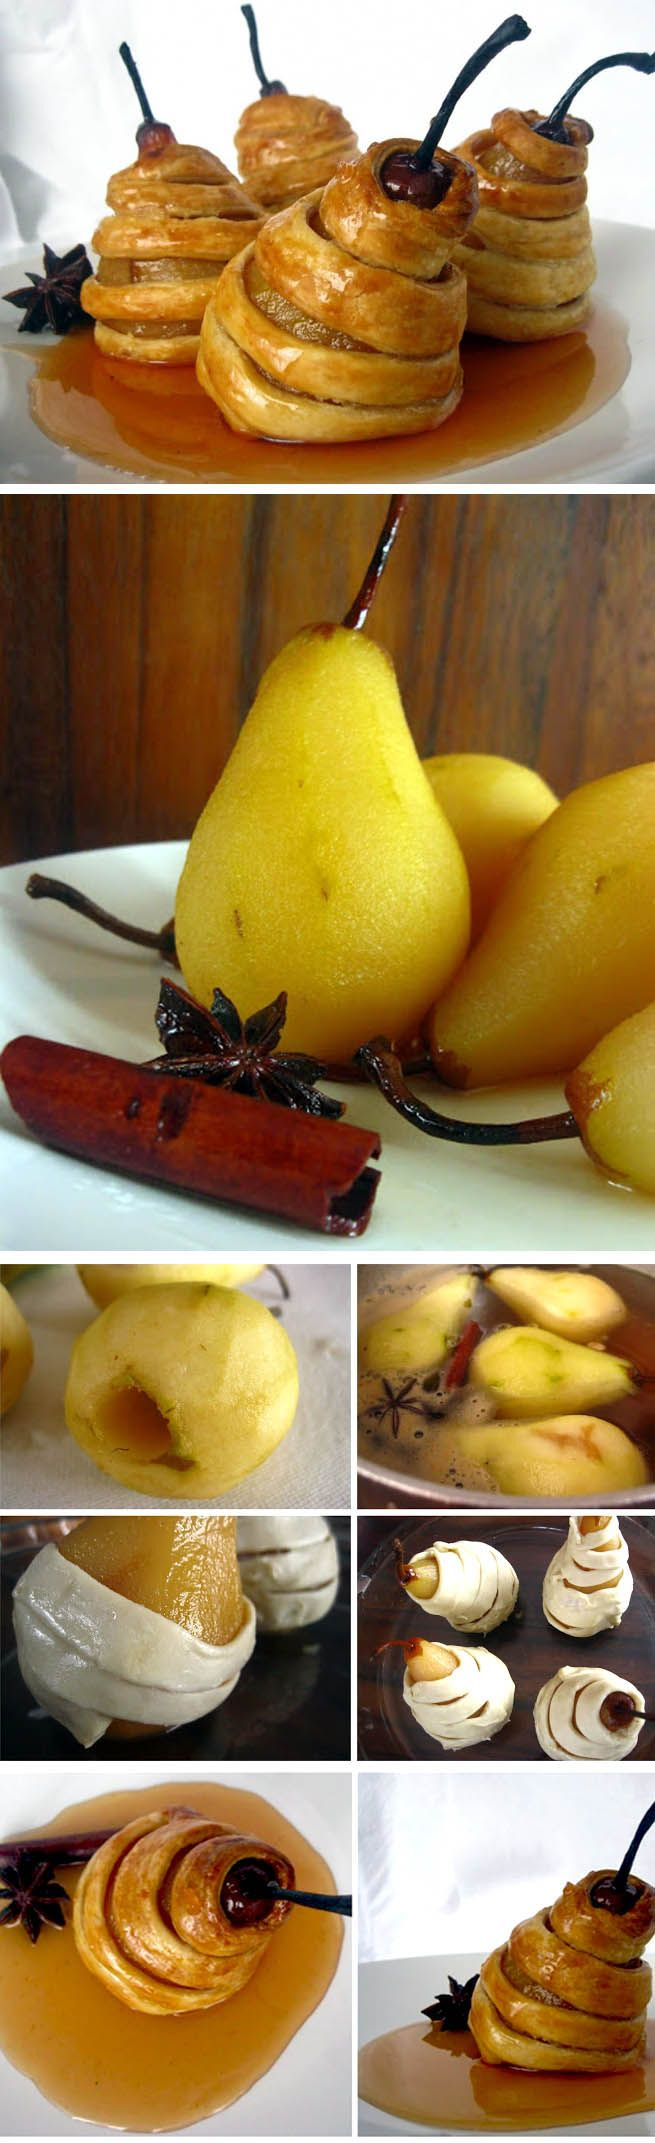 Ingredients * 4 not very ripe pears, peeled * 1L water * 1.5 cups sugar * 0.5 cup honey * taste flavors: cinnamon, cloves, star anise, etc. * juice from half a lemon * 200g dough ready cut strips of 8mm width